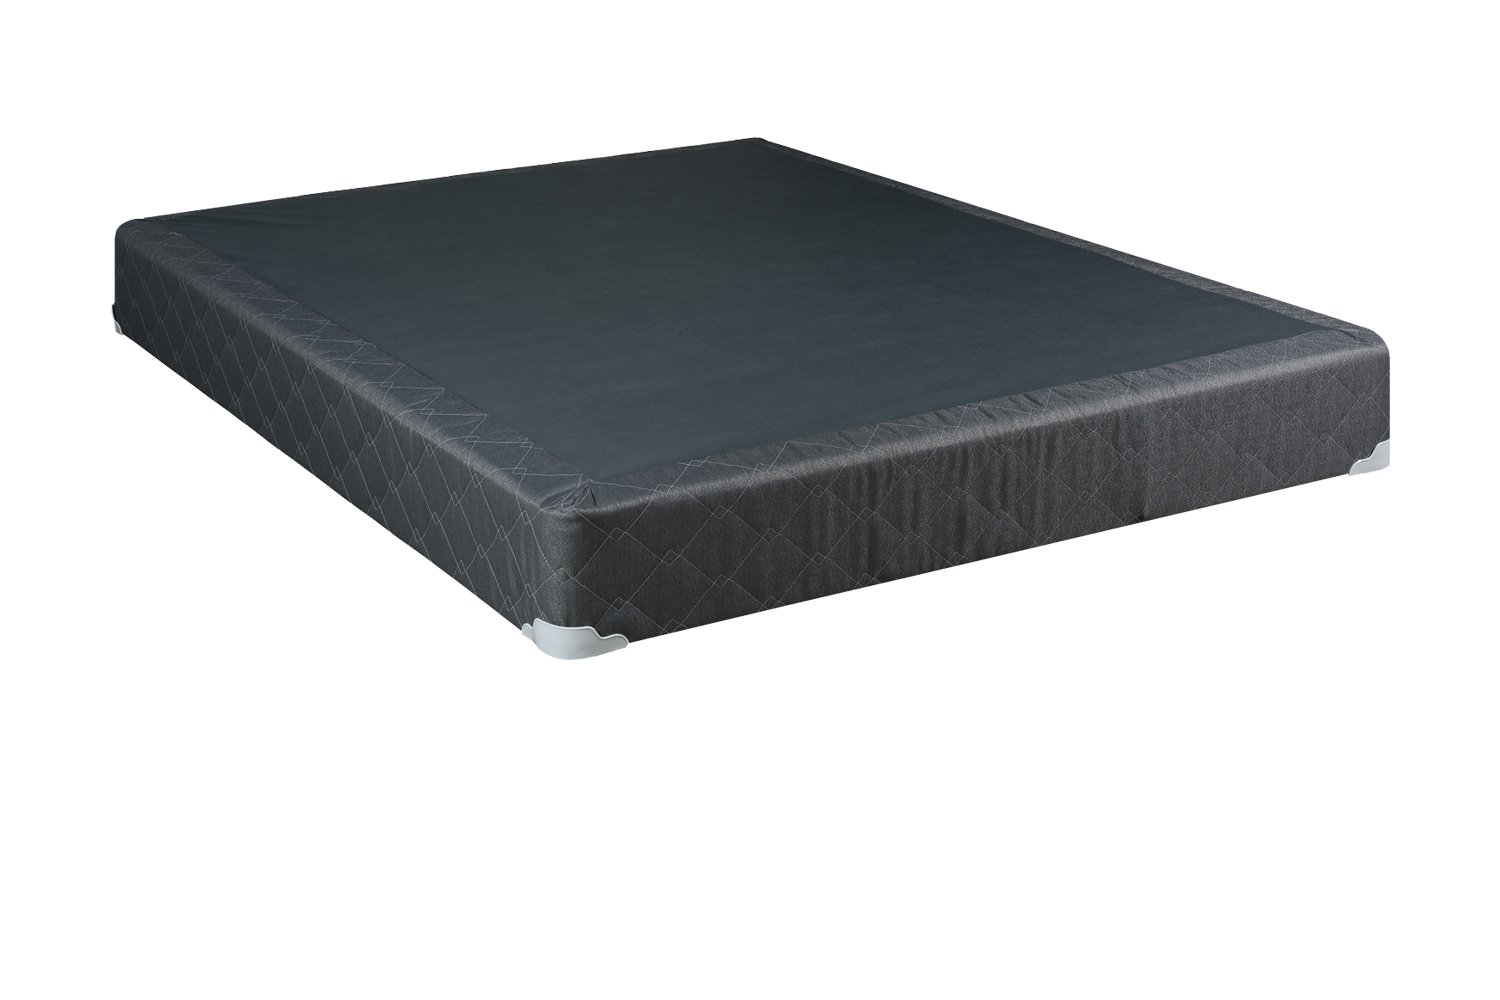 Amazon.com: Continental Sleep Mattress, 10 Inch Eurotop Pillowtop Fully  Assembled Orthopedic Full Size Mattress and Box Spring, Beautiful Rest  Collection: ...